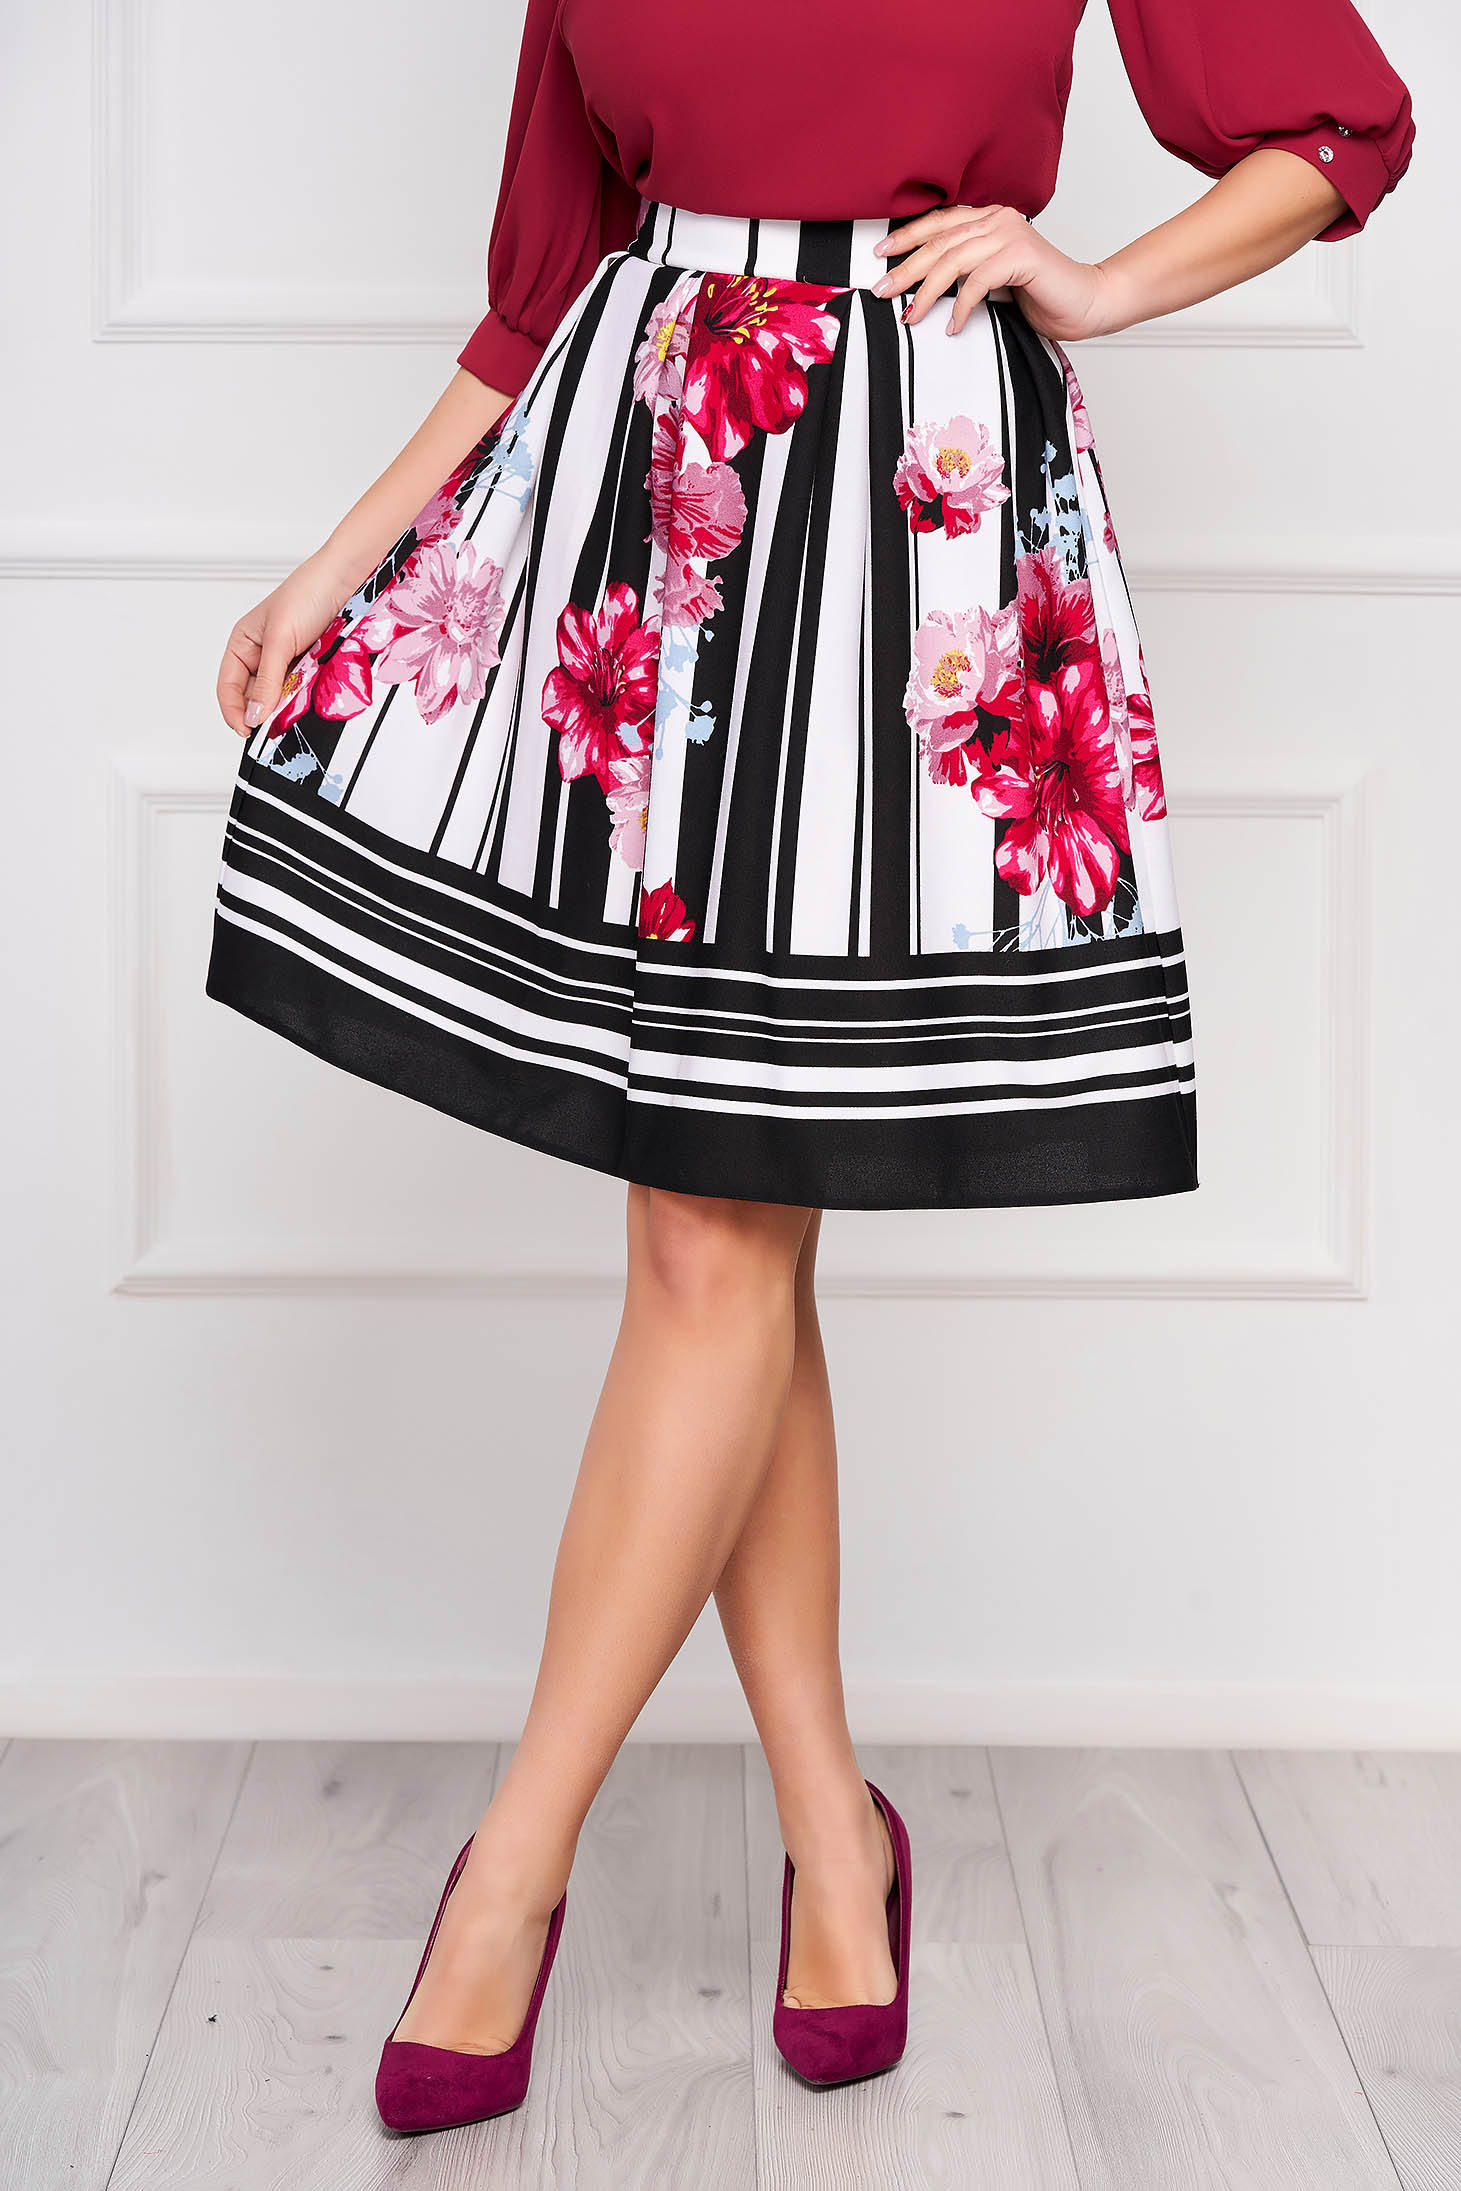 StarShinerS black office cloche skirt from elastic fabric with pockets with floral prints high waisted